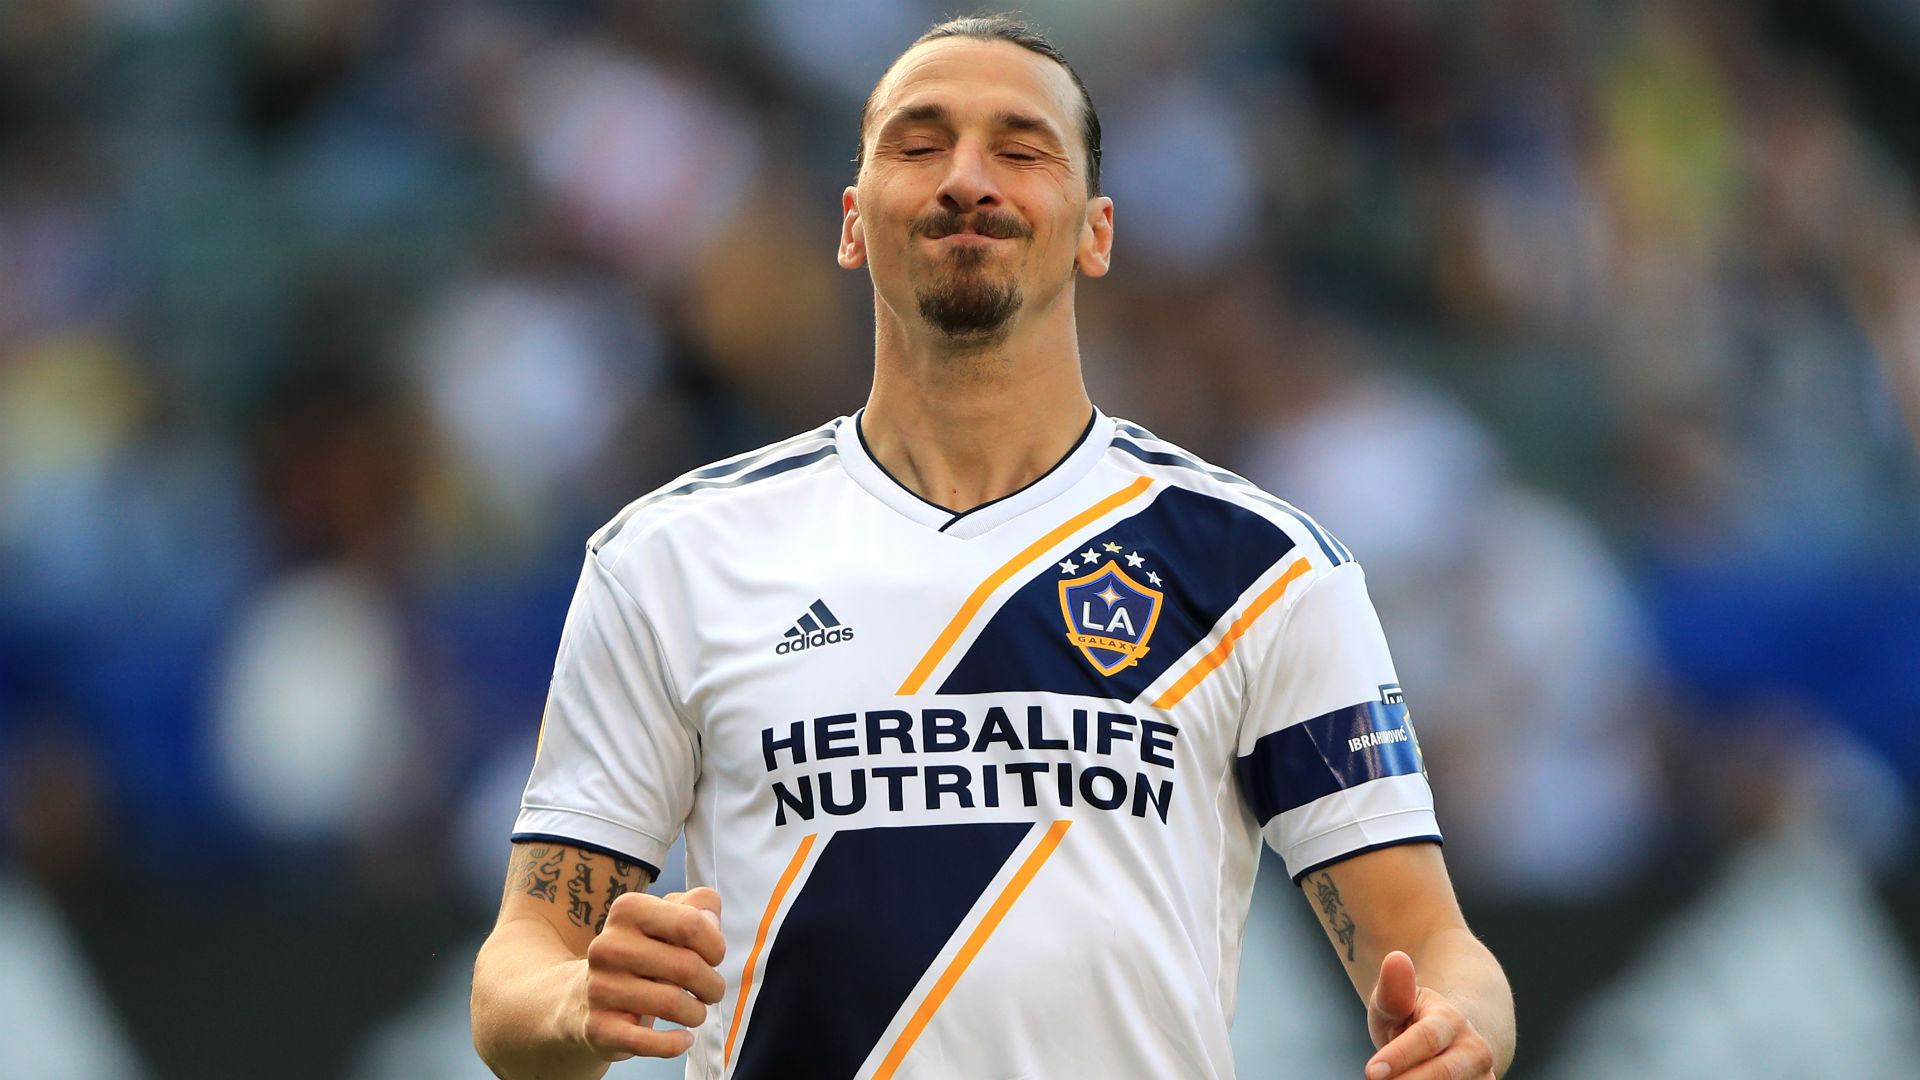 newest collection 64d2c 6f14e MSL news: La Galaxy match-winner Zlatan Ibrahimovic reacts ...